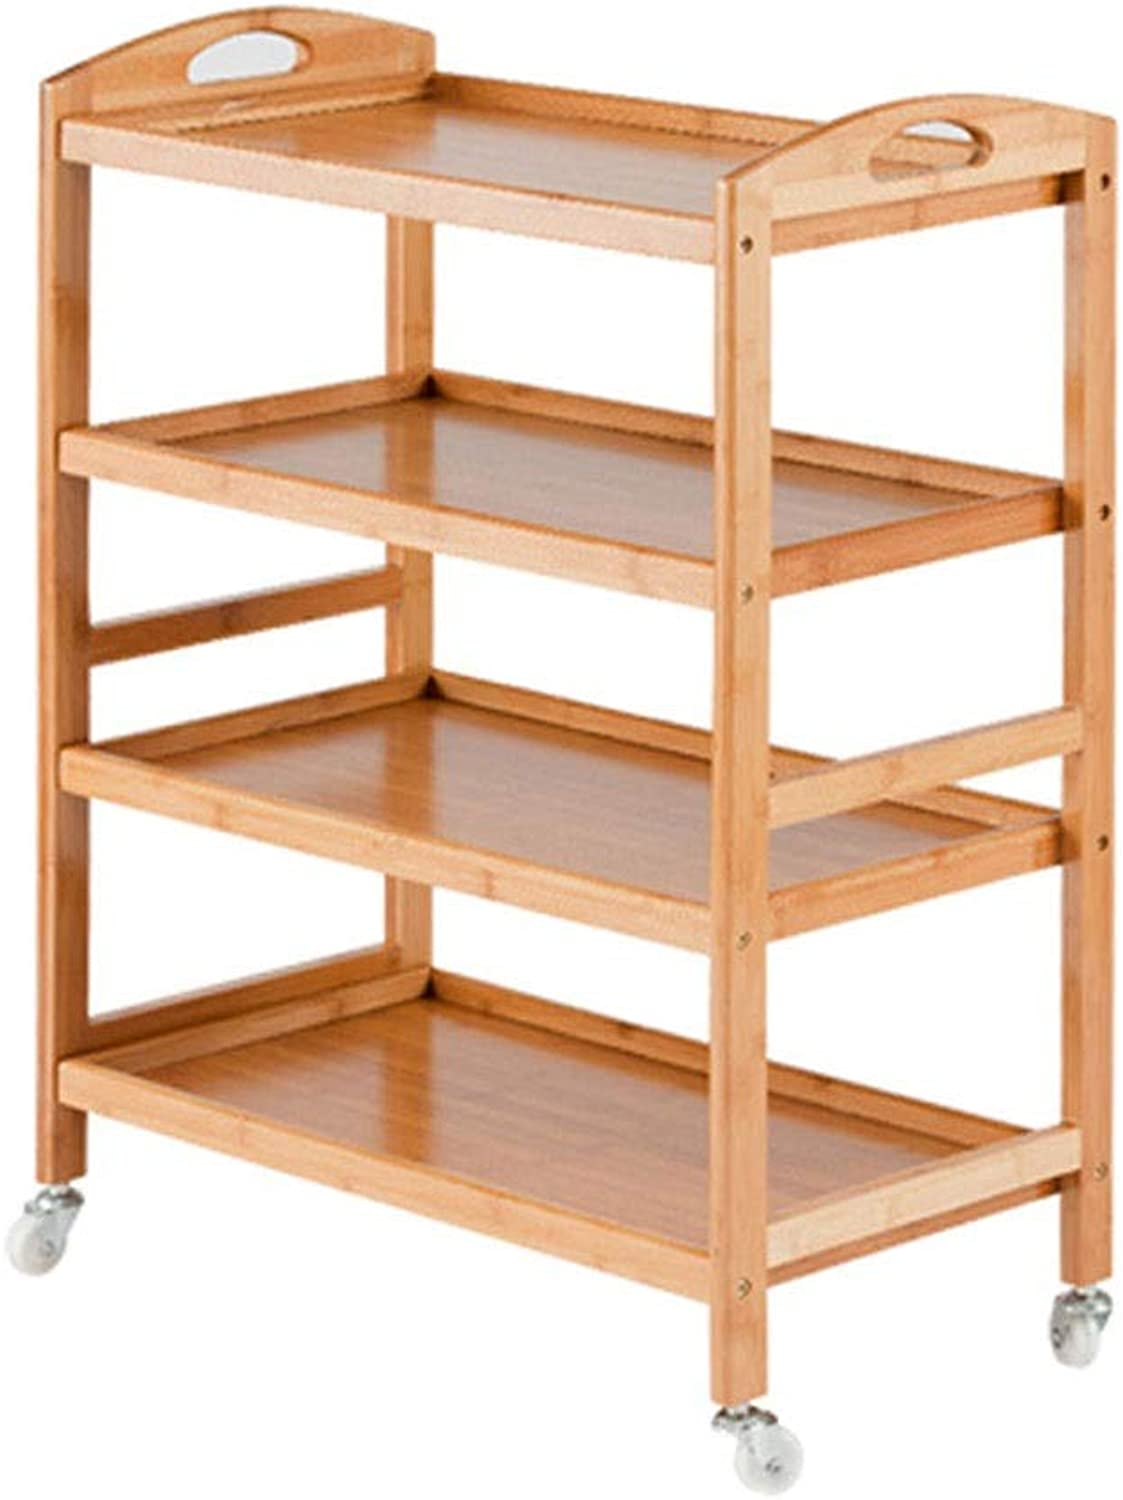 Shelf Trolley 3 4 Layers Solid Wooden Trolley Dining Shelf Trolley Household Tea cart Meal Sidecar Multi-Function Kitchen Trolley (color   Wood color, Size   4 Layers)